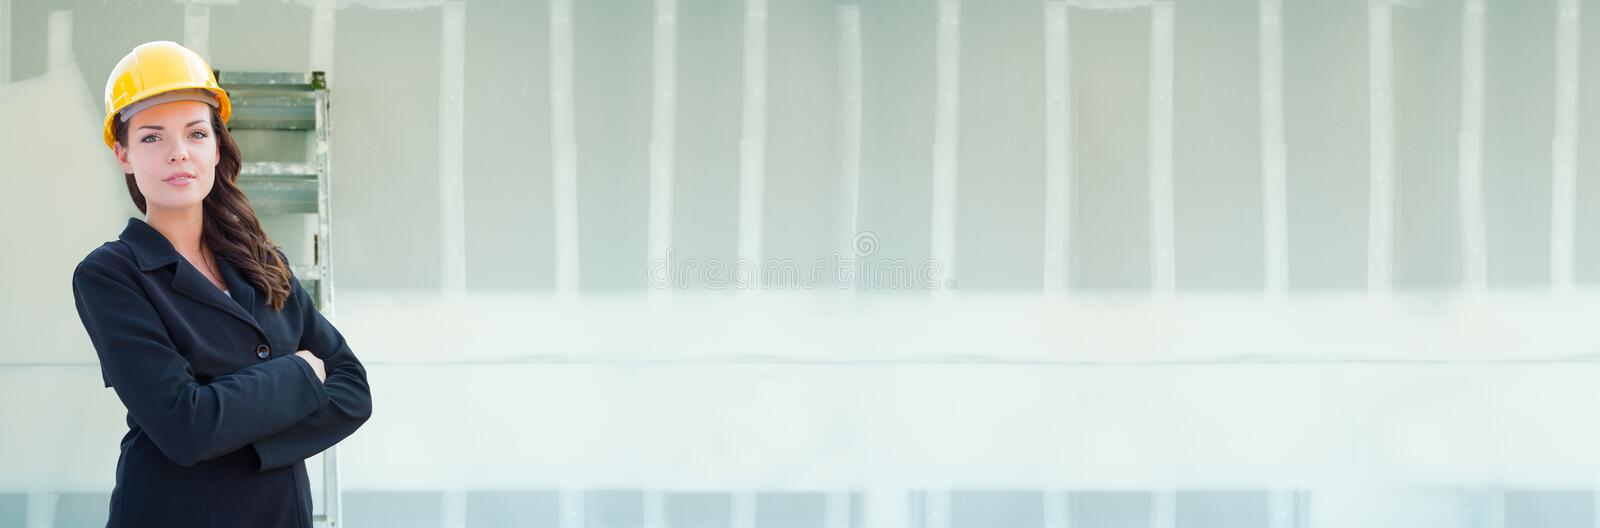 Female Contractor Wearing Hard Hat Against Drywall Banner Background with Ladder royalty free stock photography